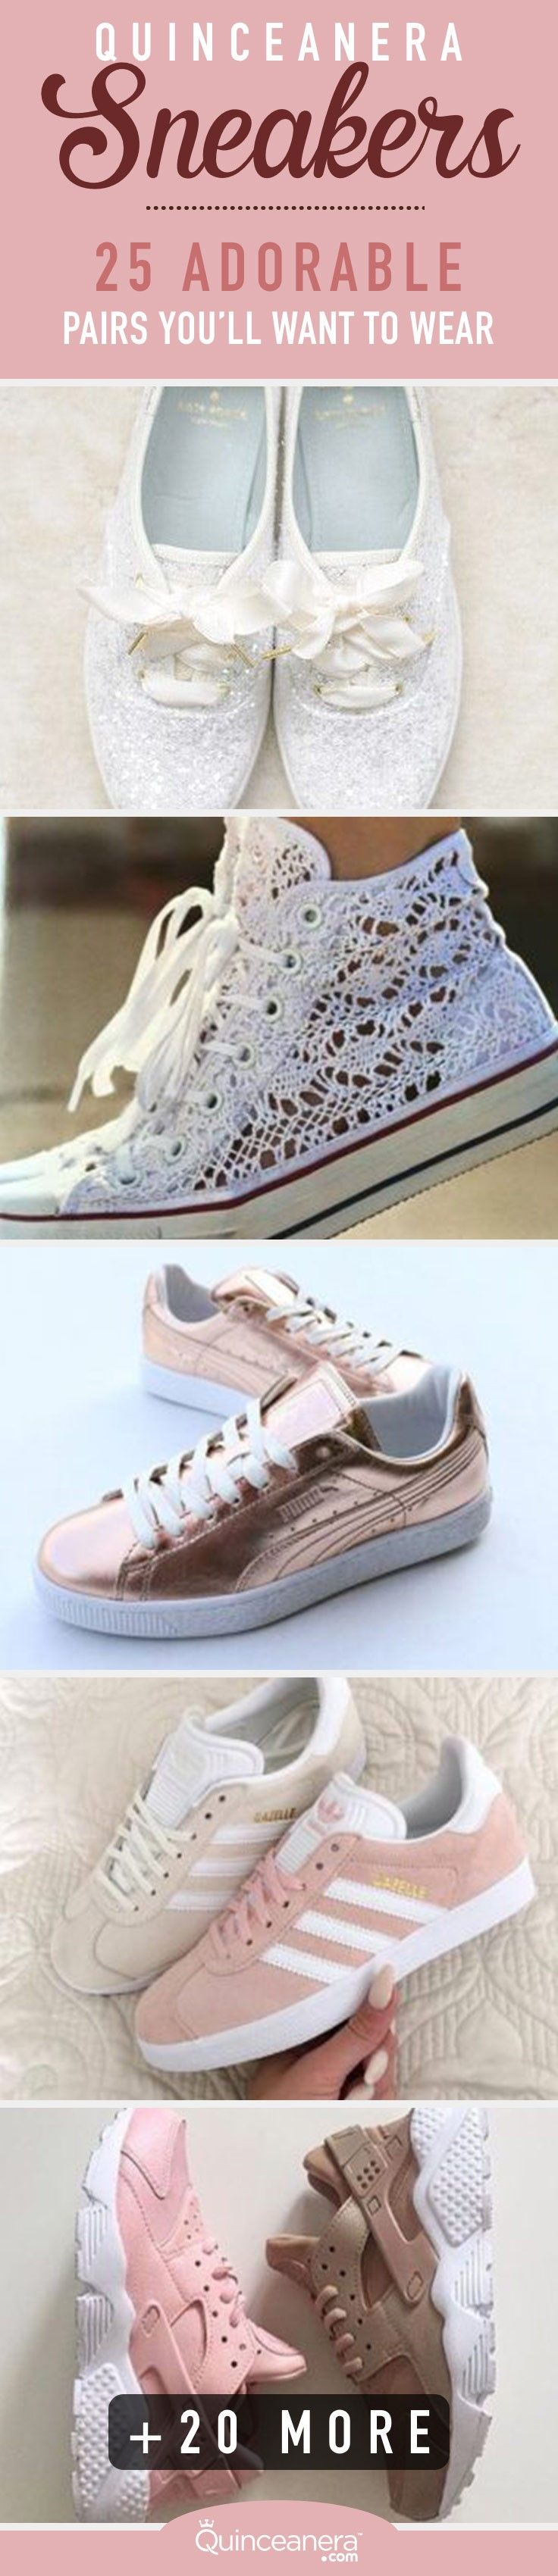 Take a look at the quinceanera sneakers that were transformed from sporty to super cute & girly!